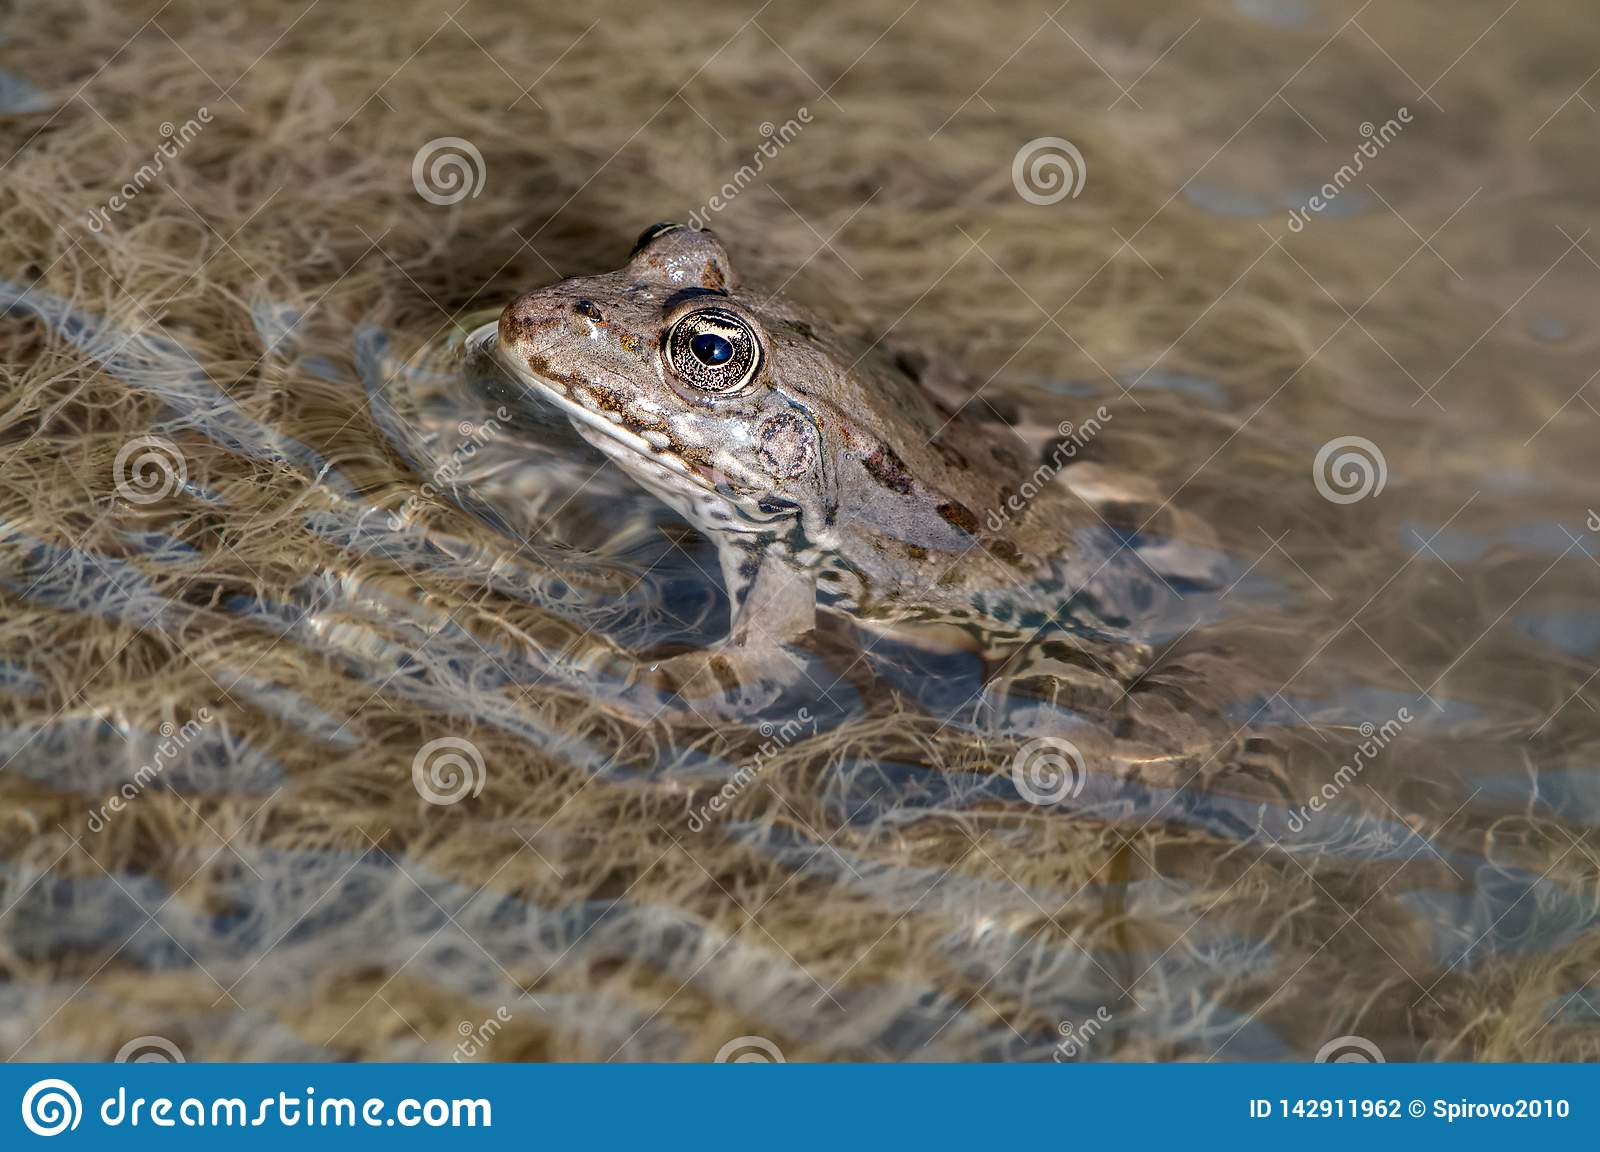 A large frog in water on a river